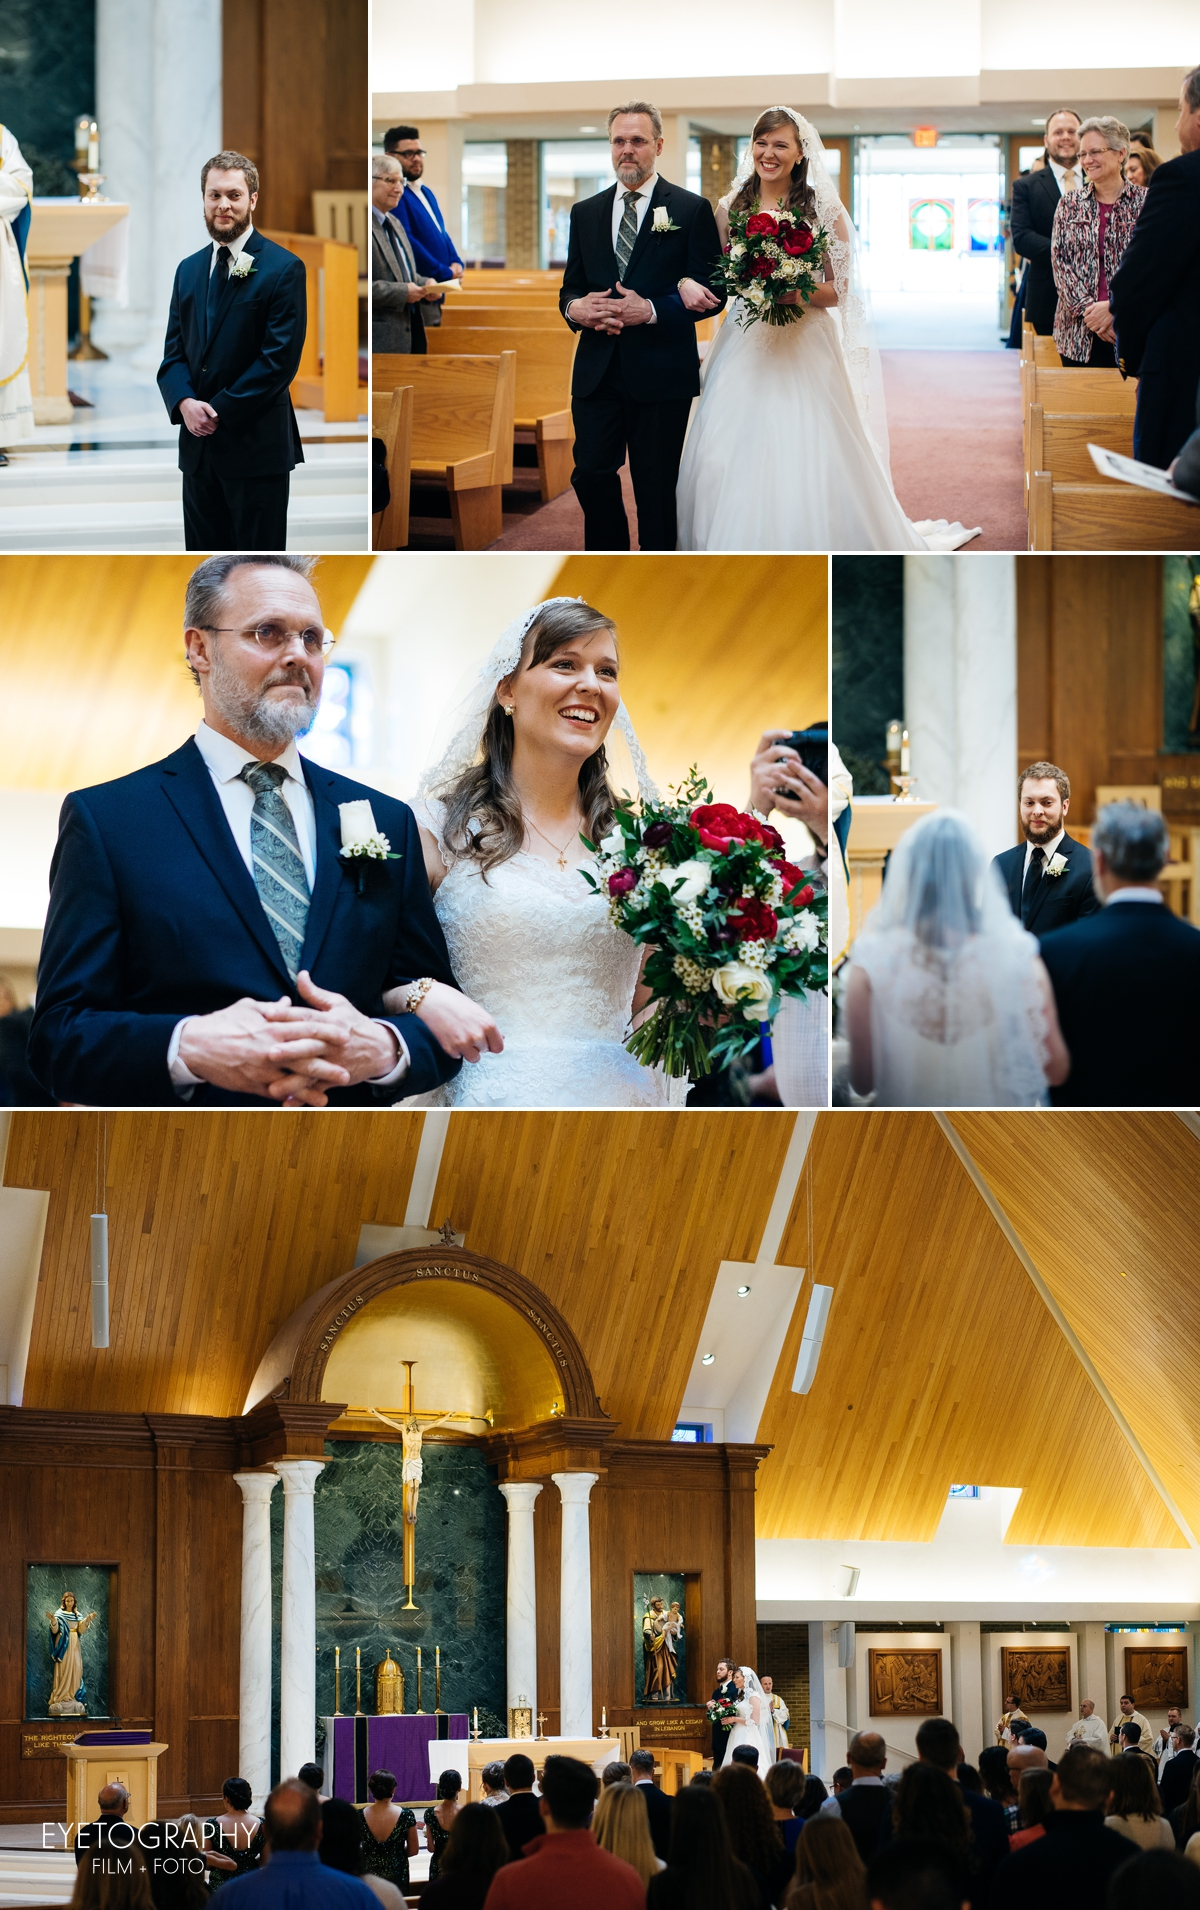 St. Paul Wedding Photography | Luke + Jean | Eyetography Film + Foto 6